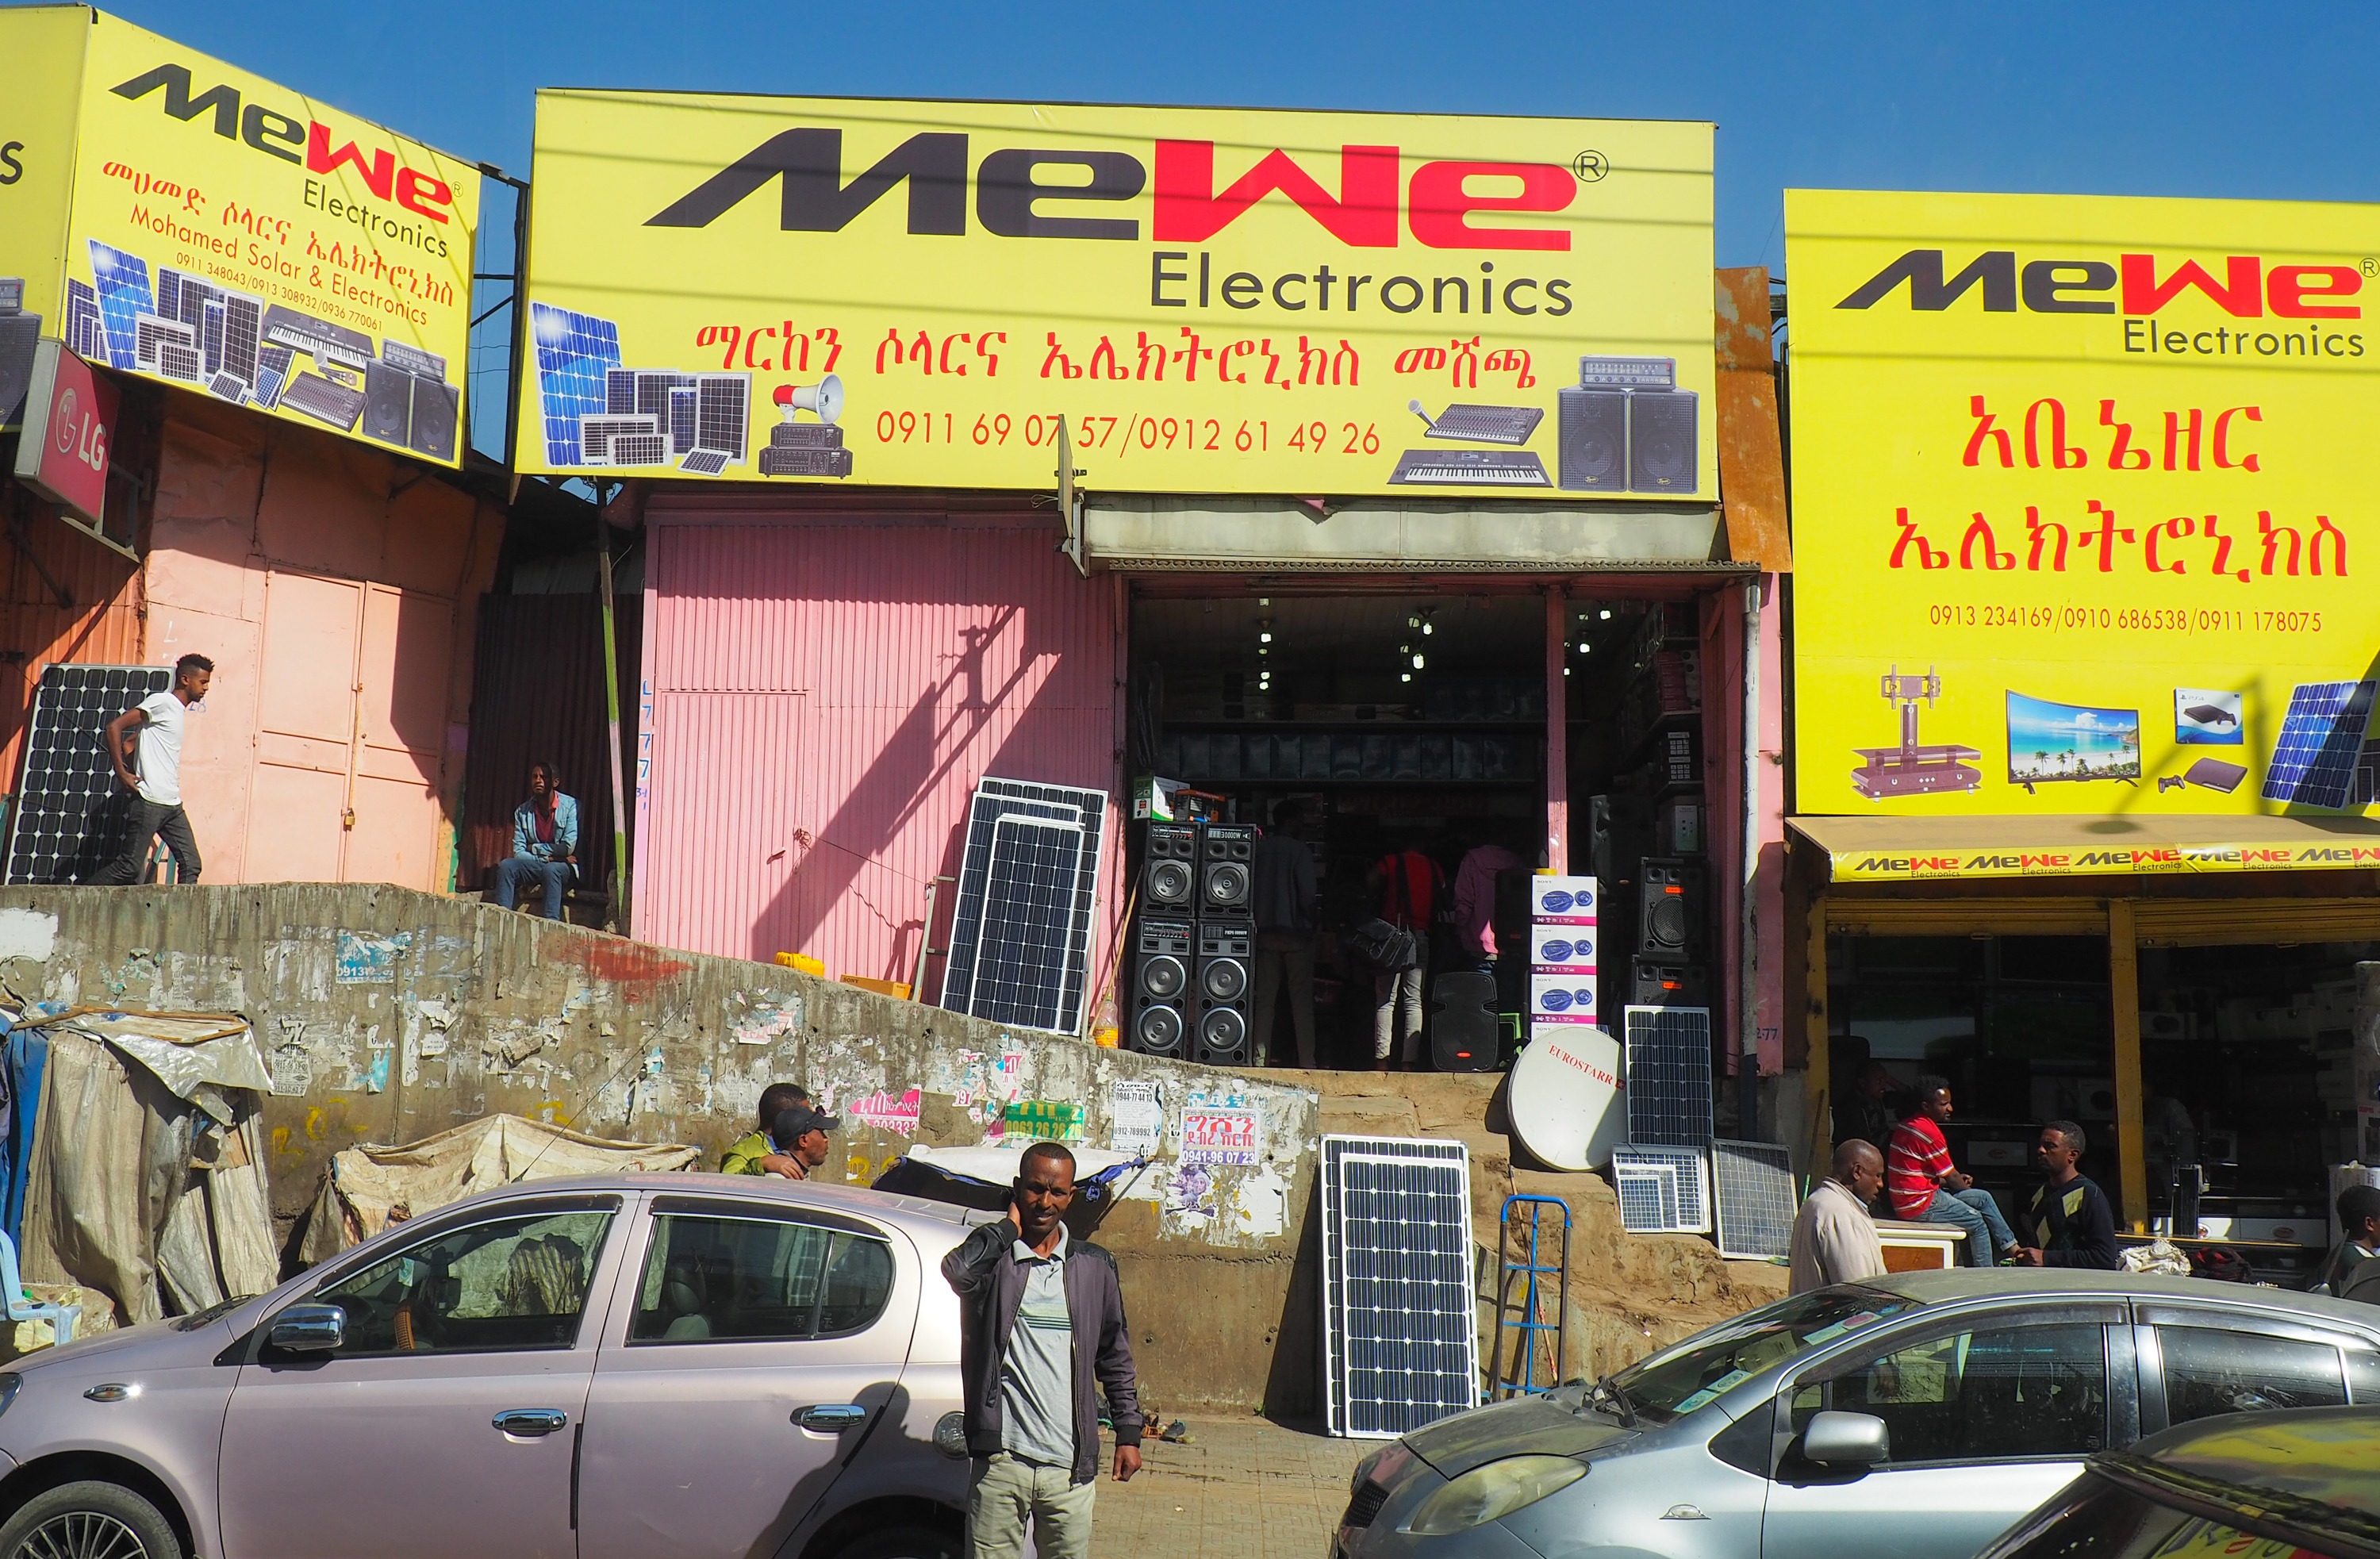 The Mercato is divided into sections - this is clearly the electronics section.